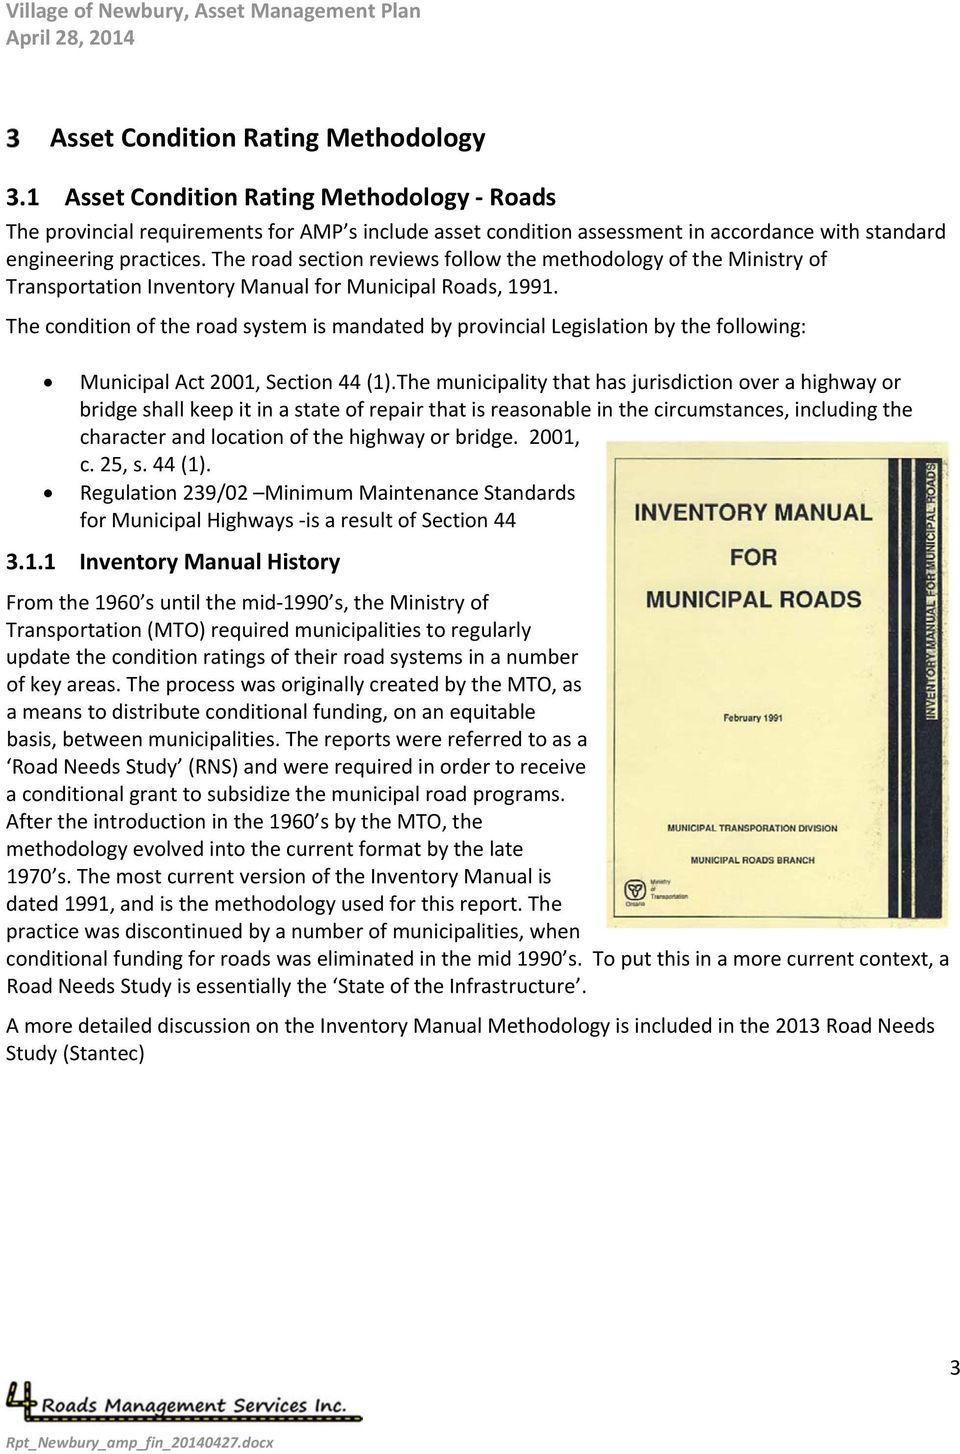 The road section reviews follow the methodology of the Ministry of Transportation Inventory Manual for Municipal Roads, 1991.